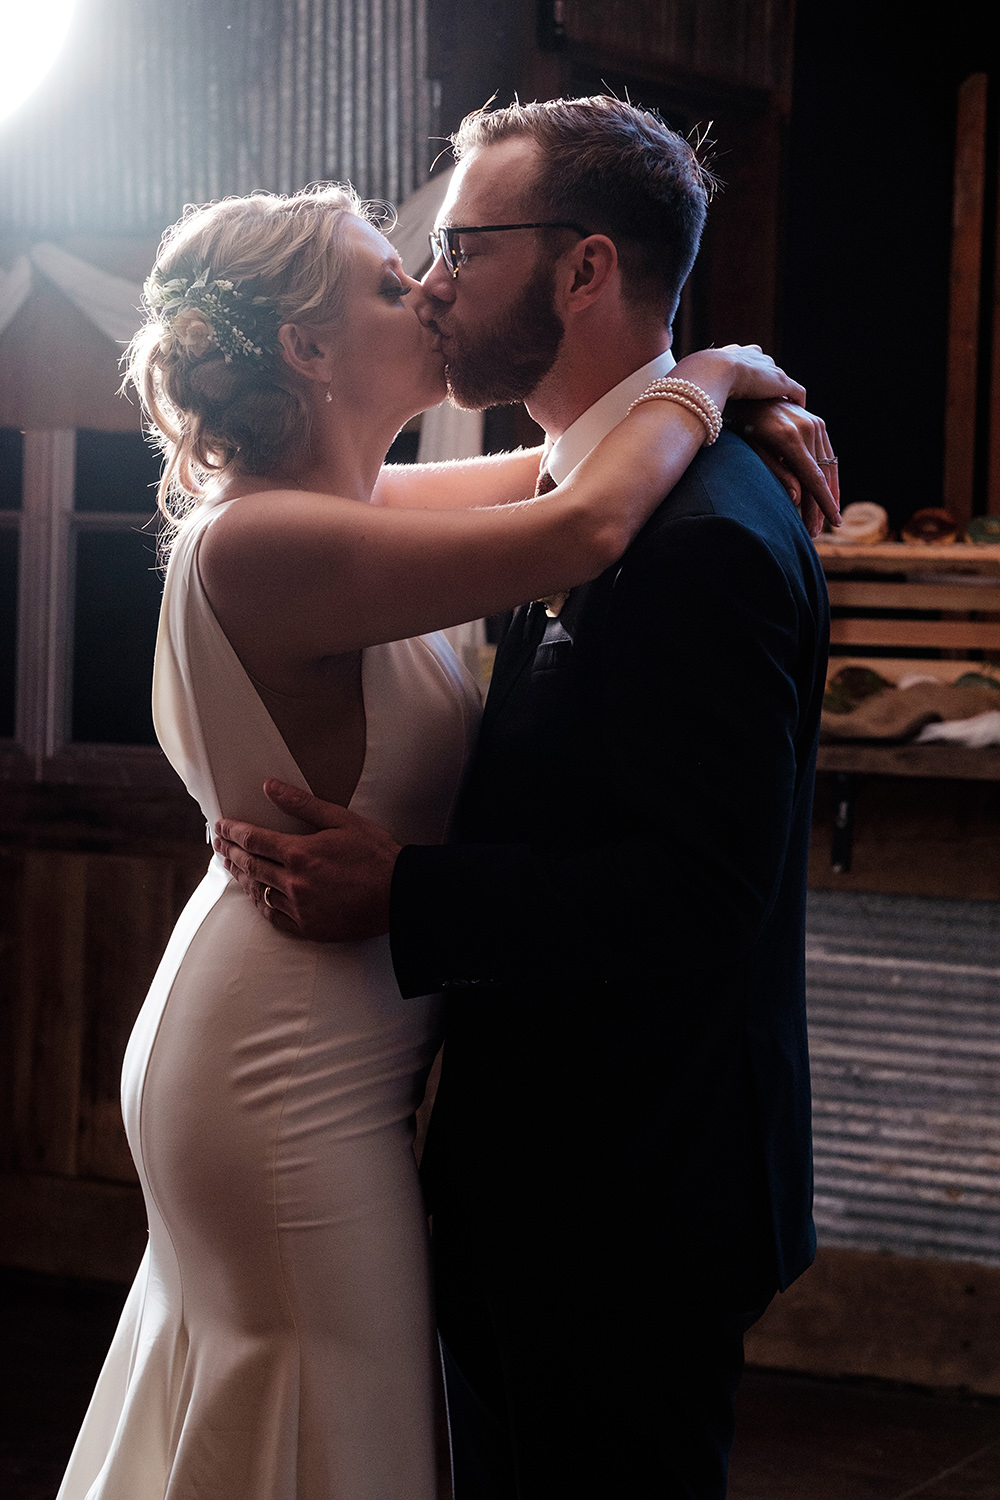 Mirrorless Cameras and Wedding Photography - dance and kiss